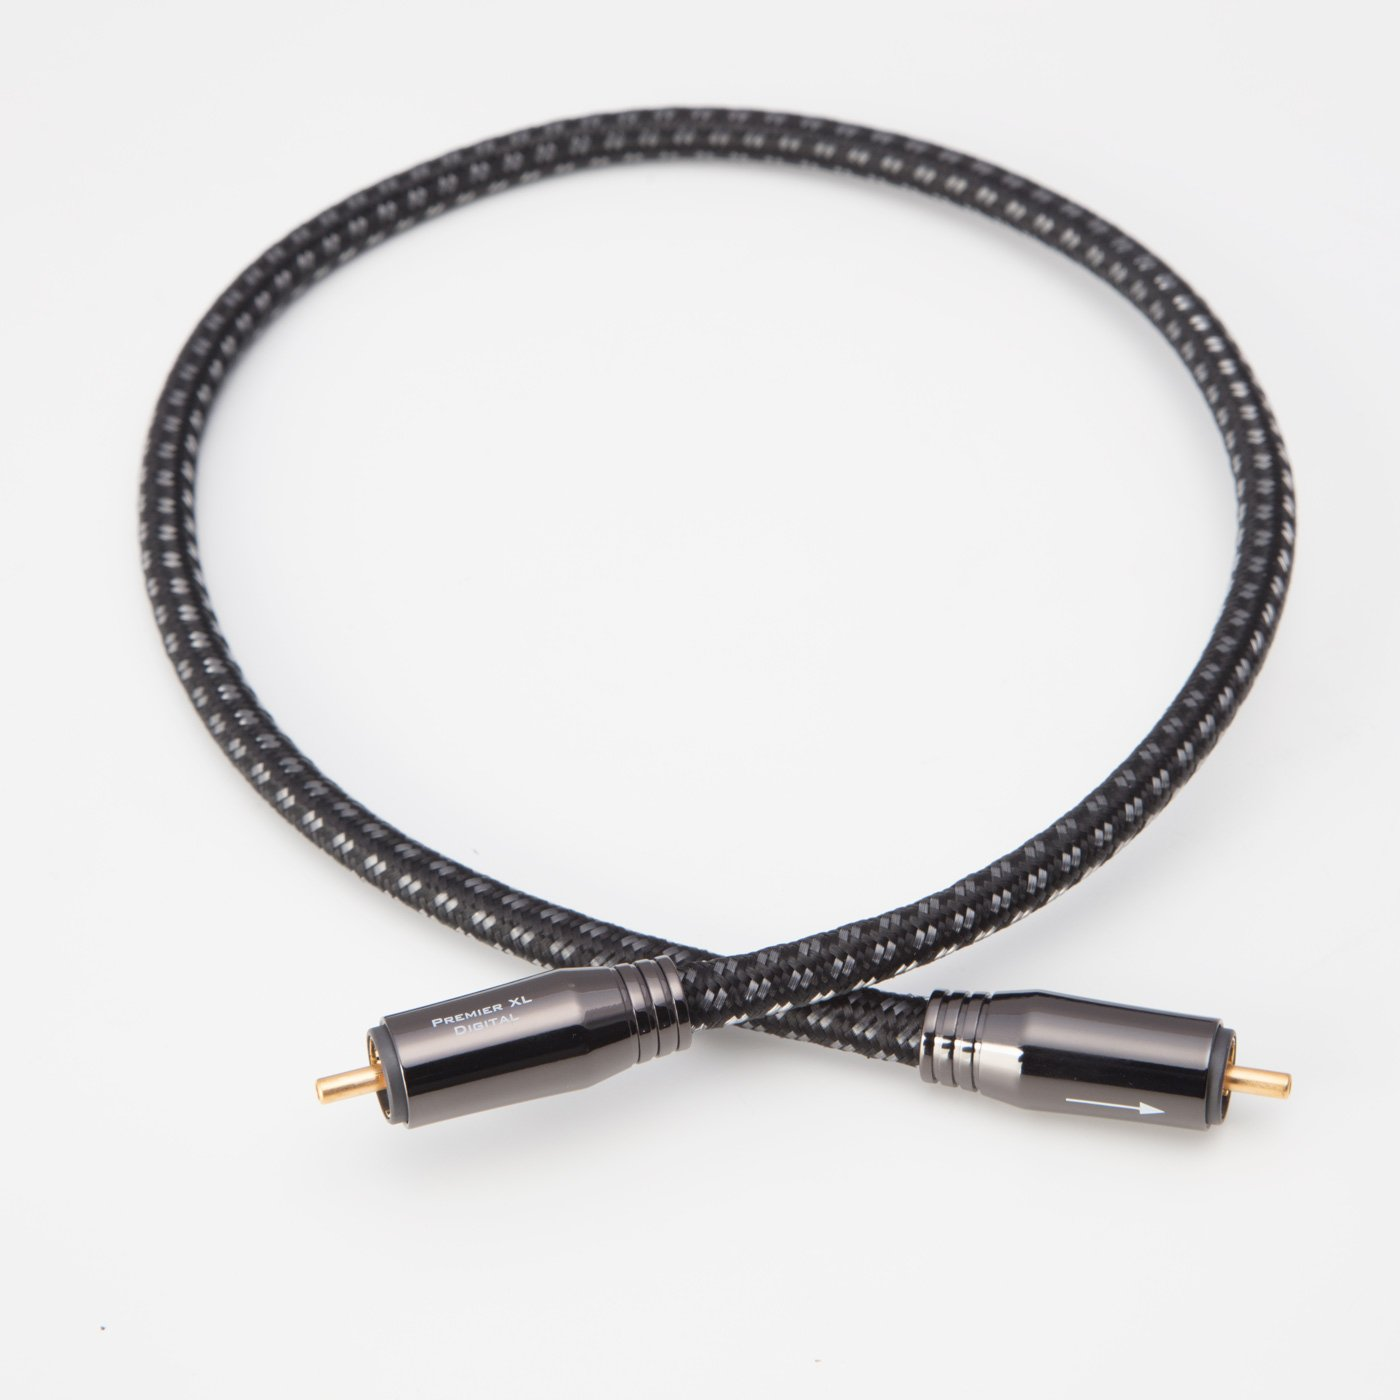 Amazon.com: Pangea Audio Premier XL Digital Coaxial Cable (0.6 Meter): Home Audio & Theater